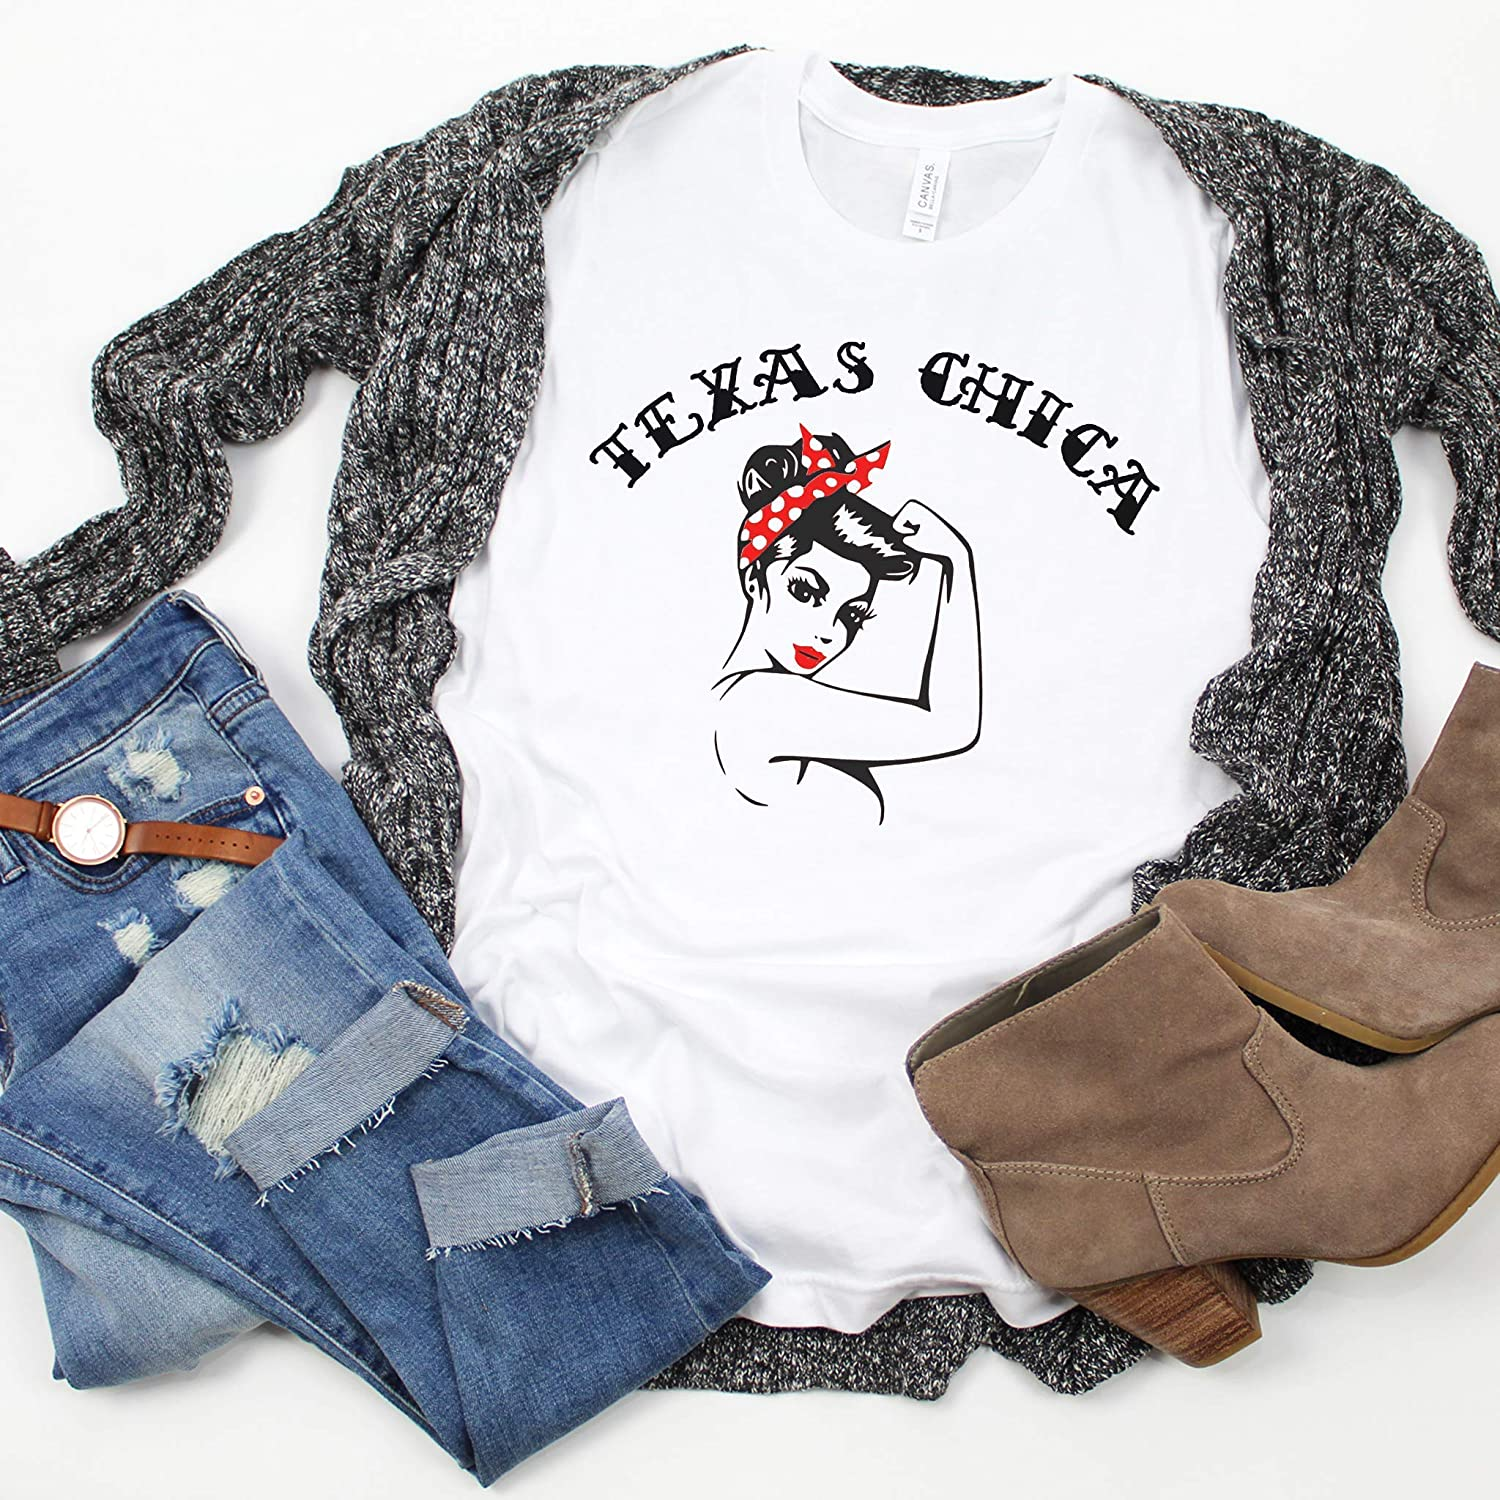 Amazon.com: Texas Chica Shirt Strong Girl Rosie the Riveter ...